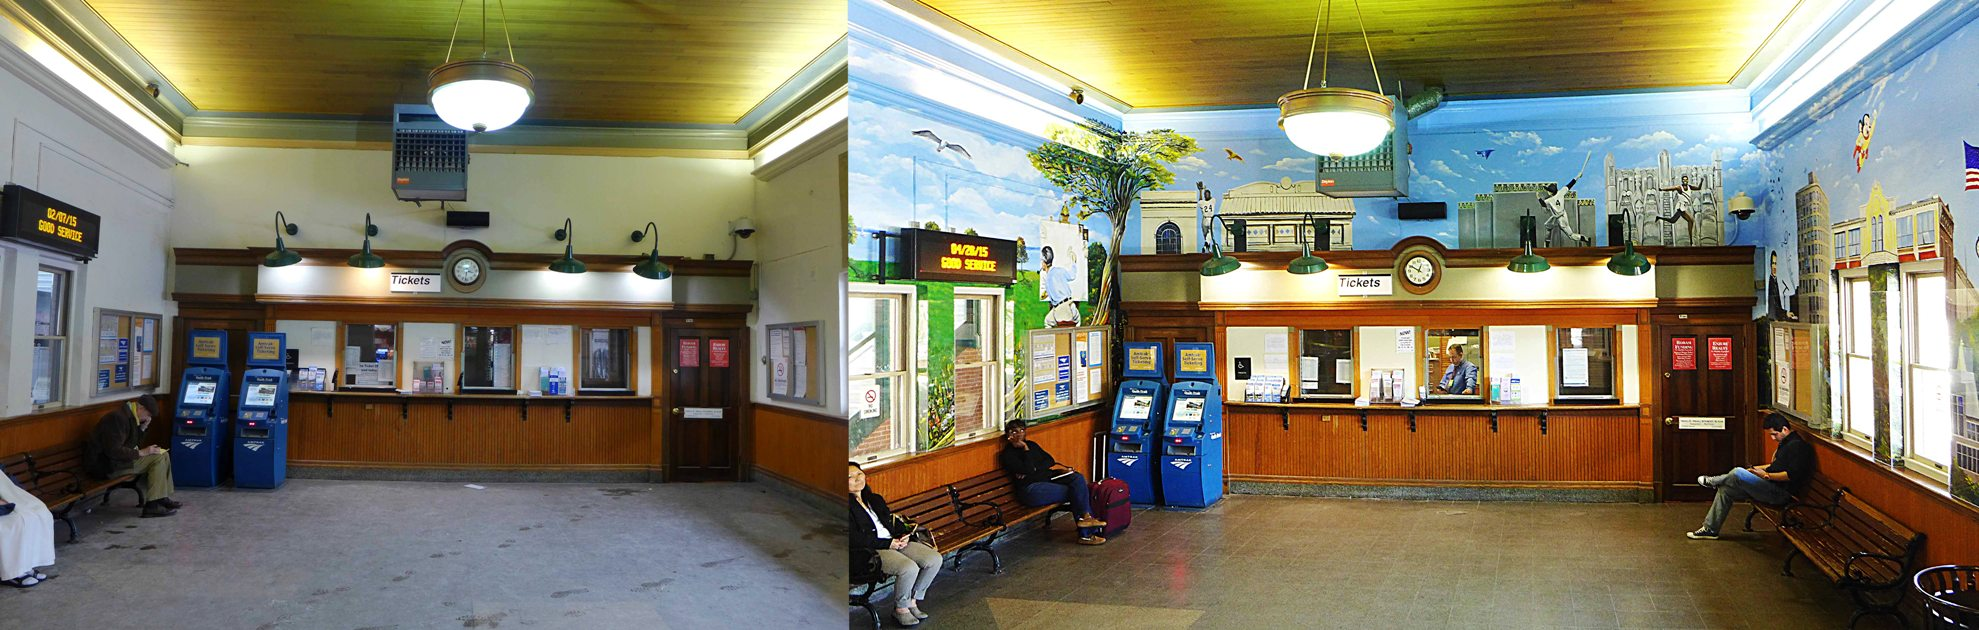 Before & After MMAD Station Mural